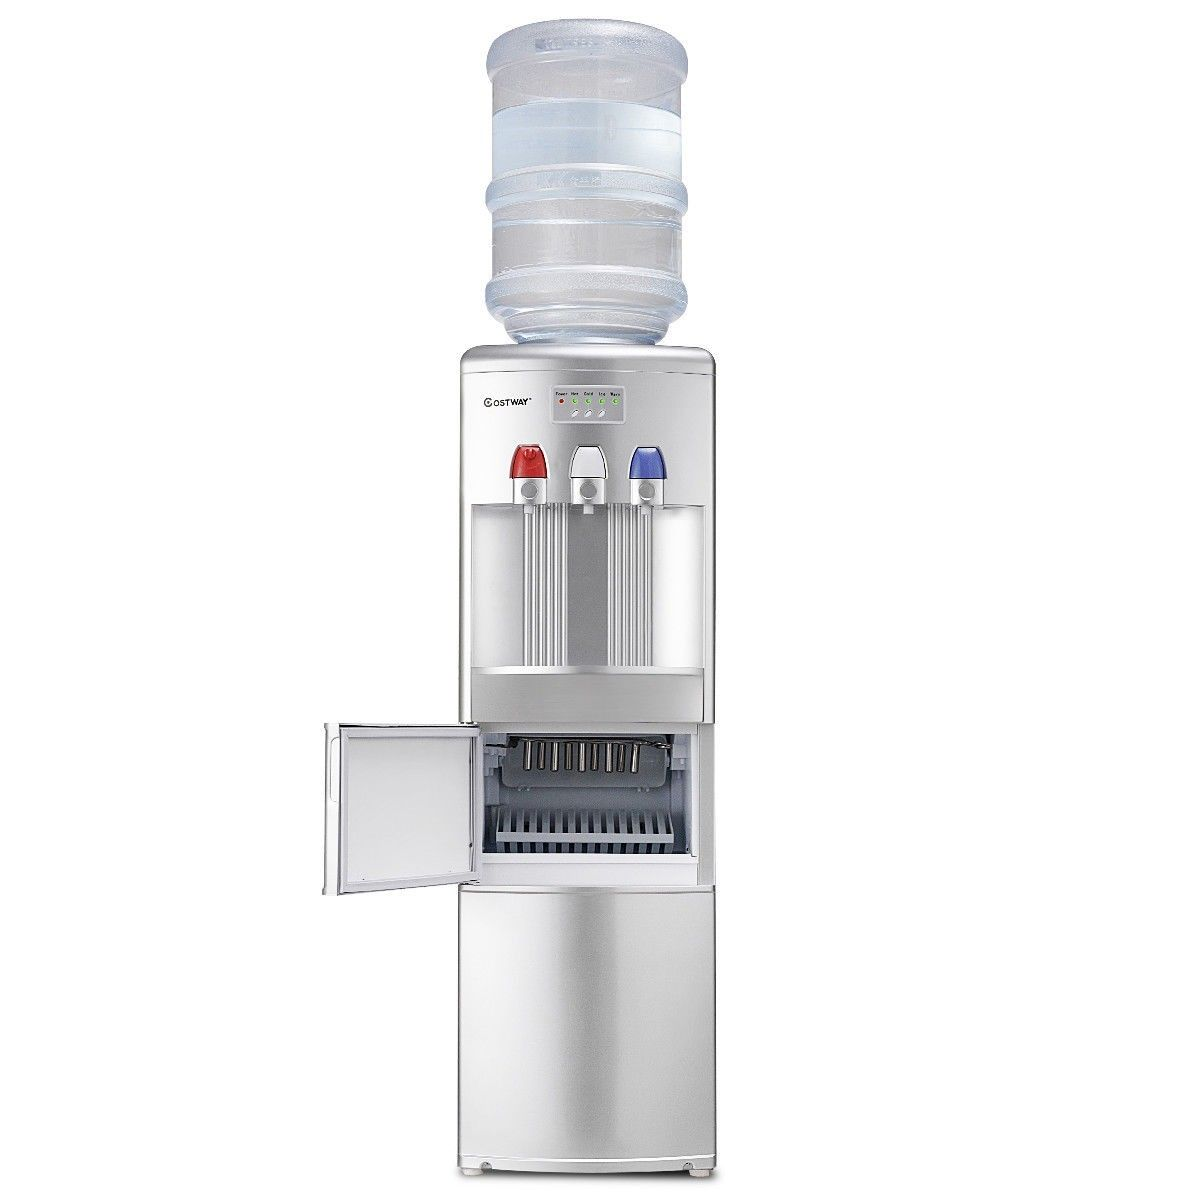 Top Loading Water Dispenser With Built In Ice Maker Machine Color